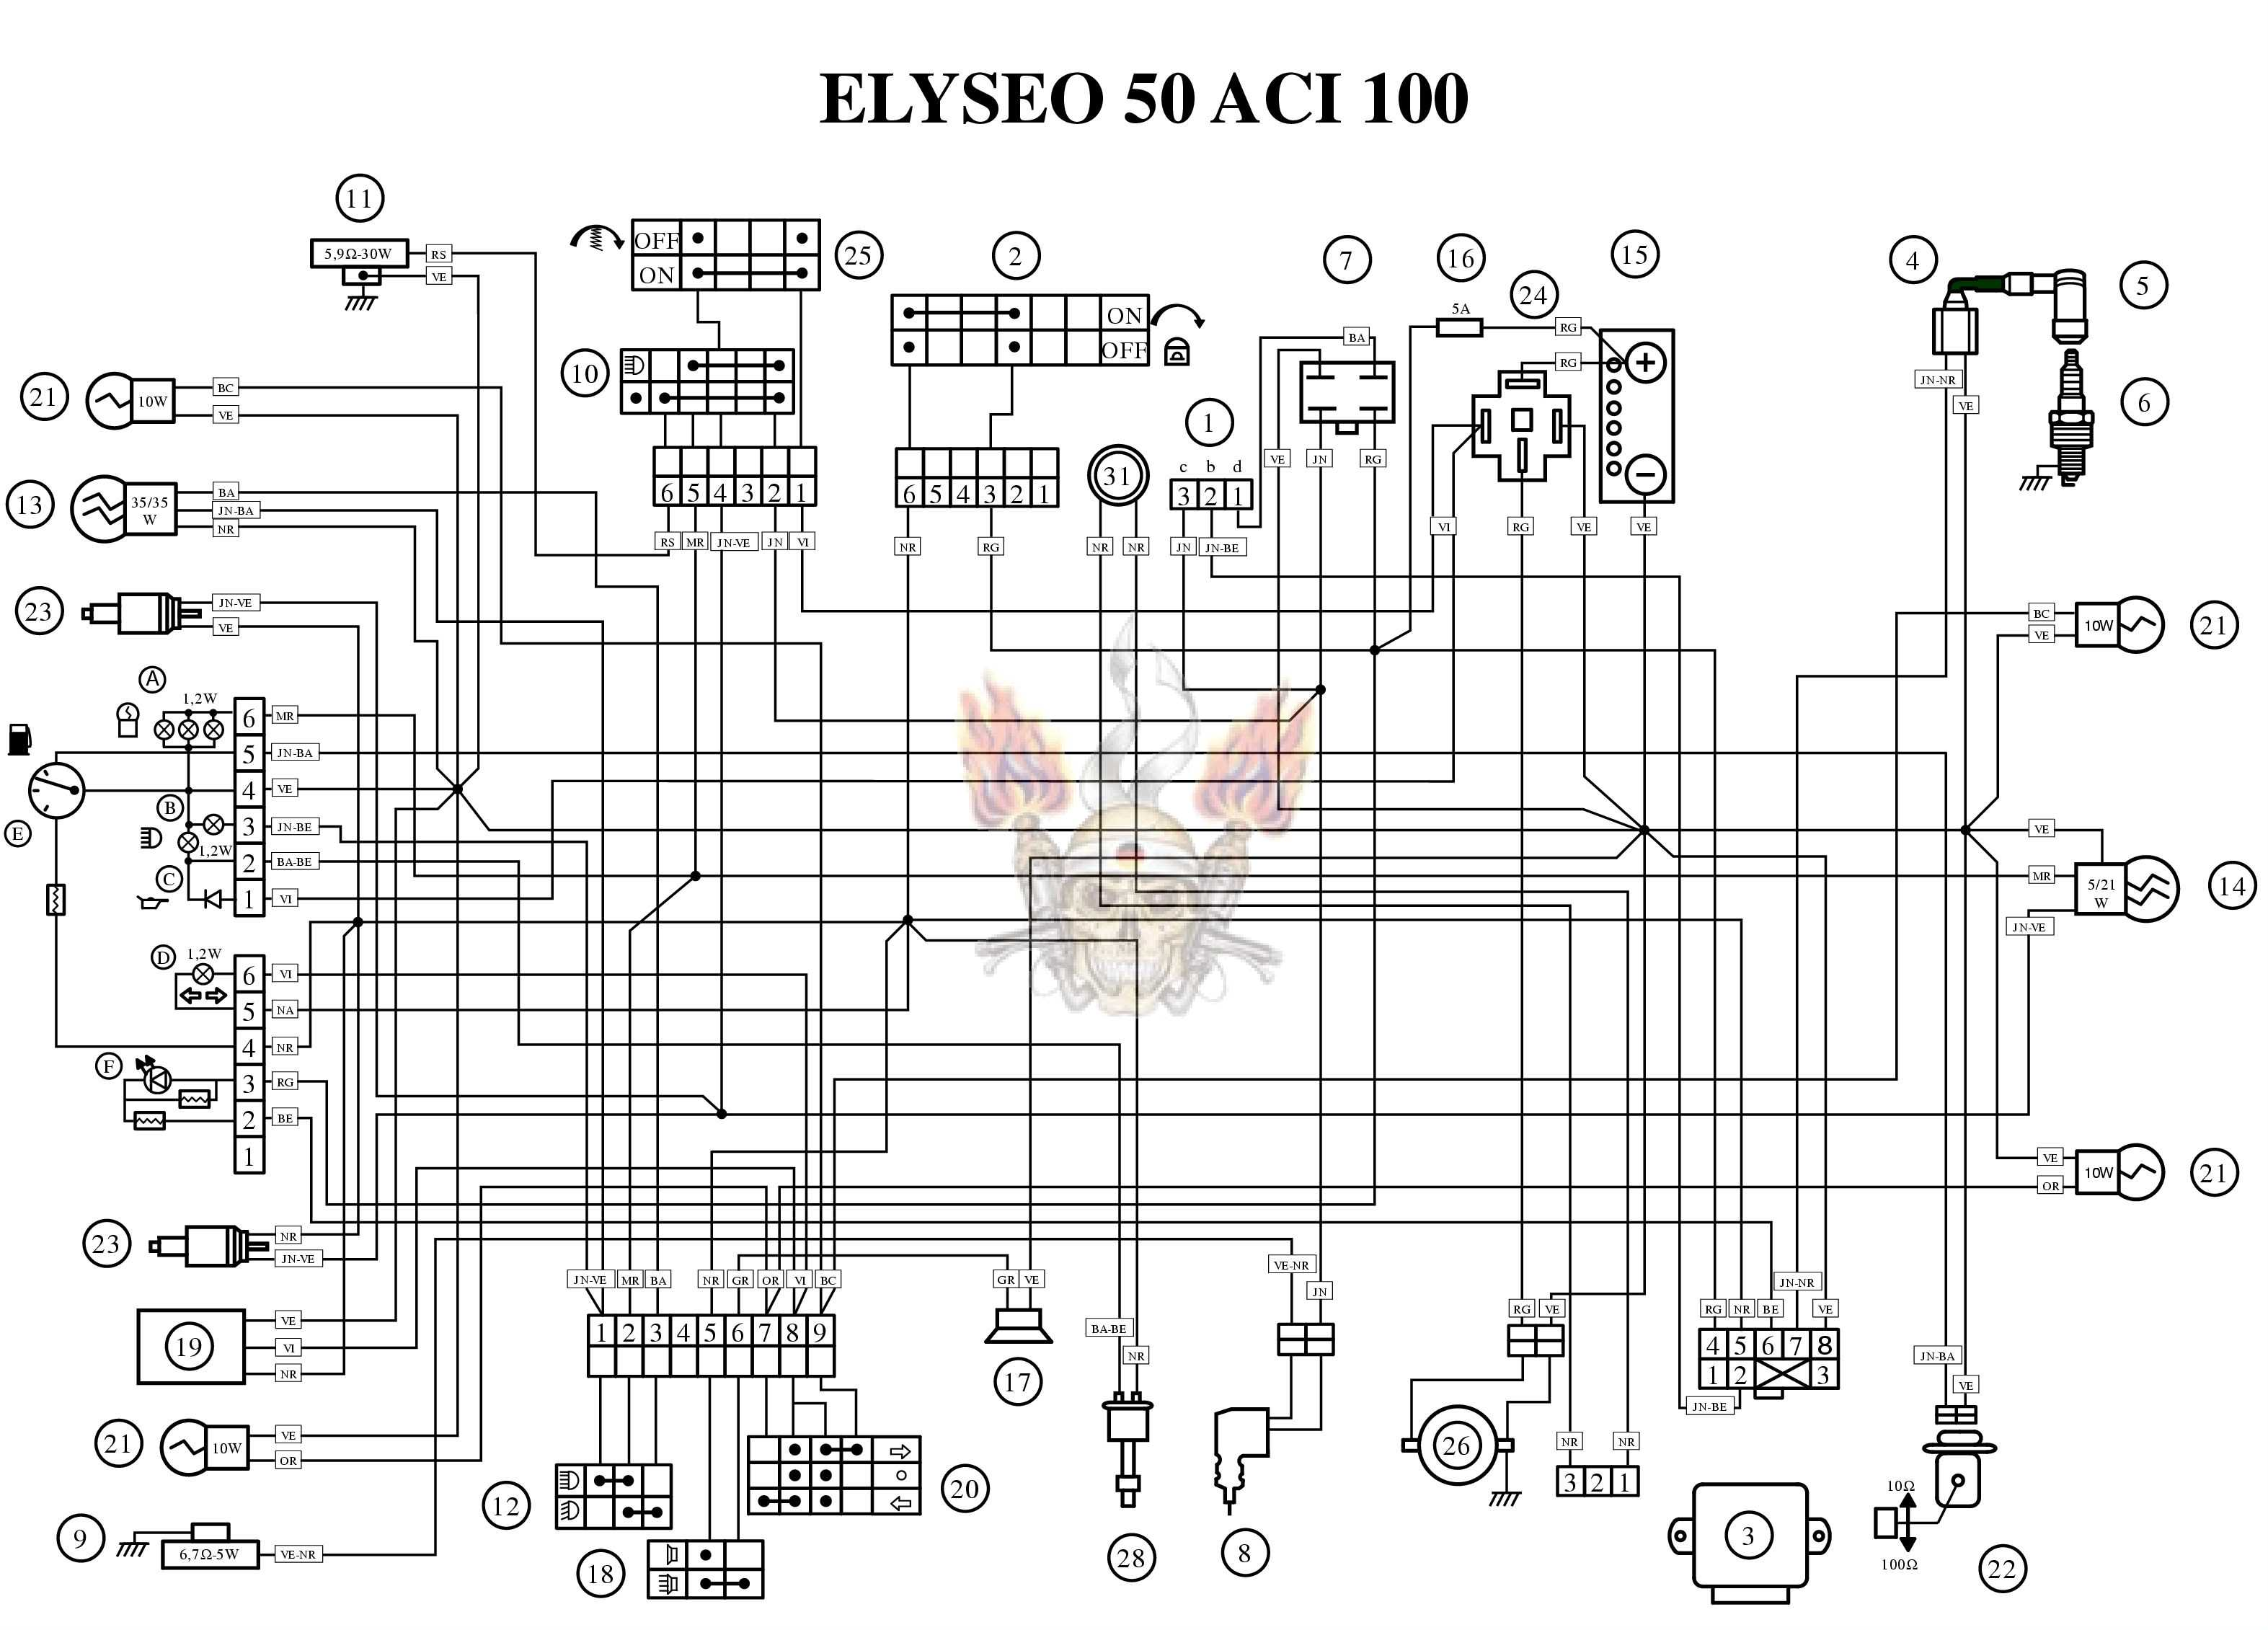 Linhai 300 Atv Wiring Diagram on Gy6 150cc Engine Parts Diagram